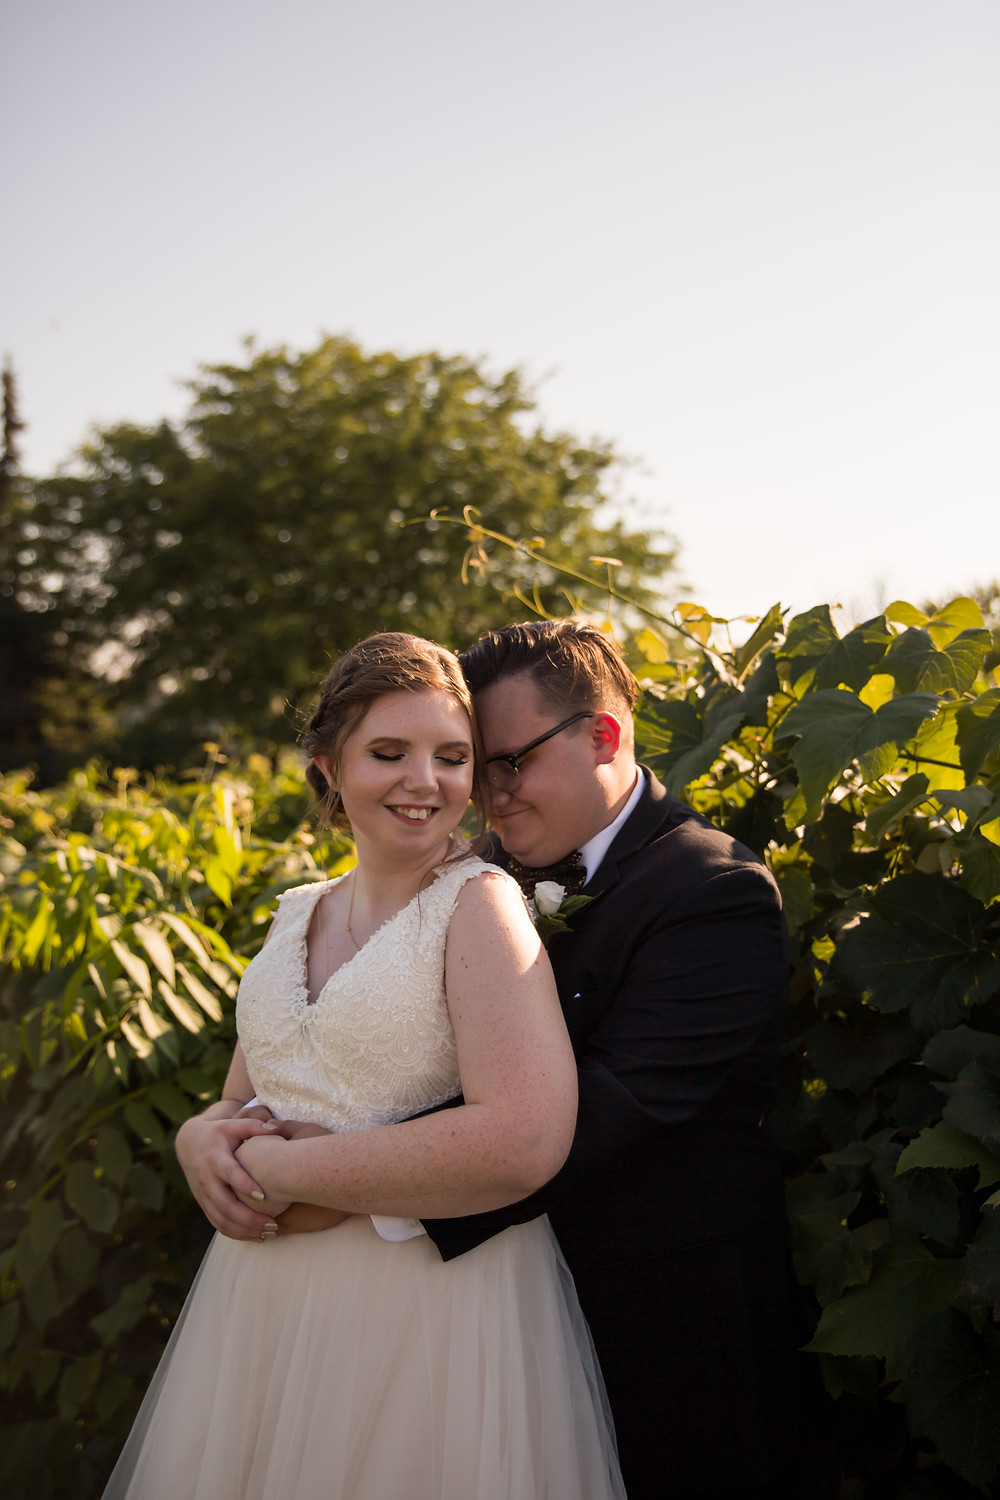 bridal portrait Becker Farms Vizcarra Vineyards Gasport NY intimate wedding covid